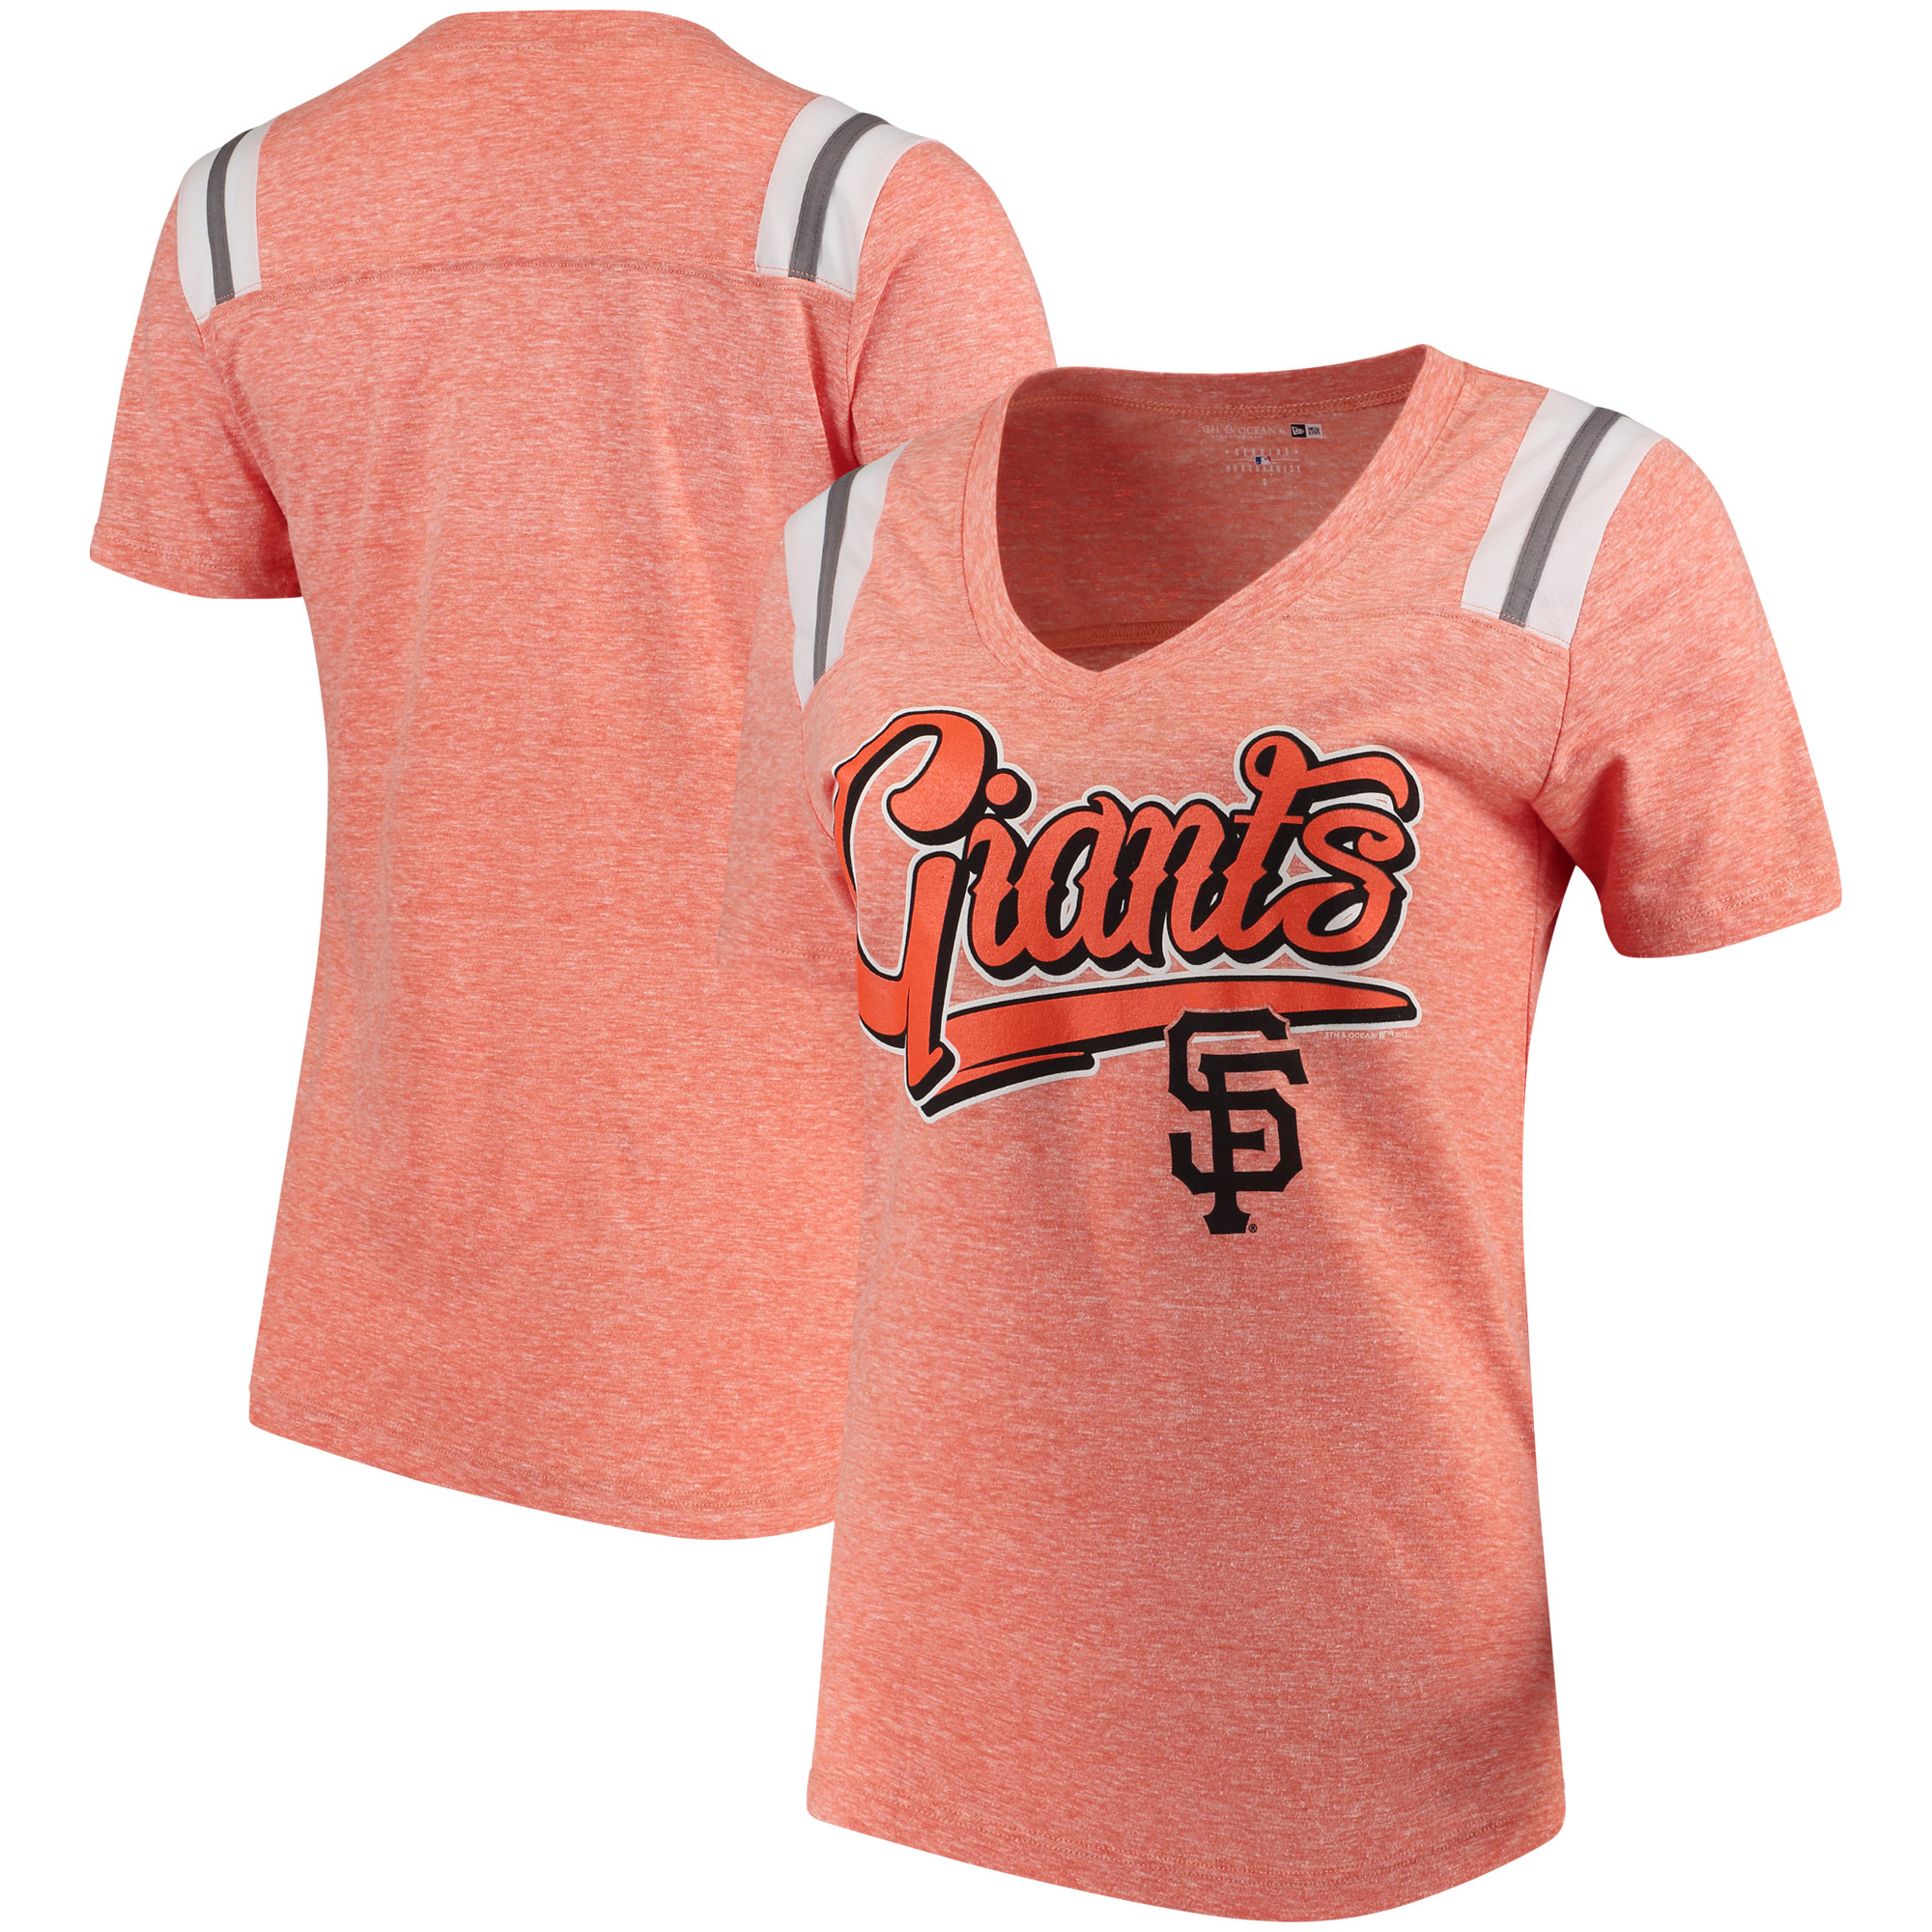 Women's 5th & Ocean by New Era Orange/White San Francisco Giants Tri-Blend V-Neck T-Shirt with Shoulder Inserts